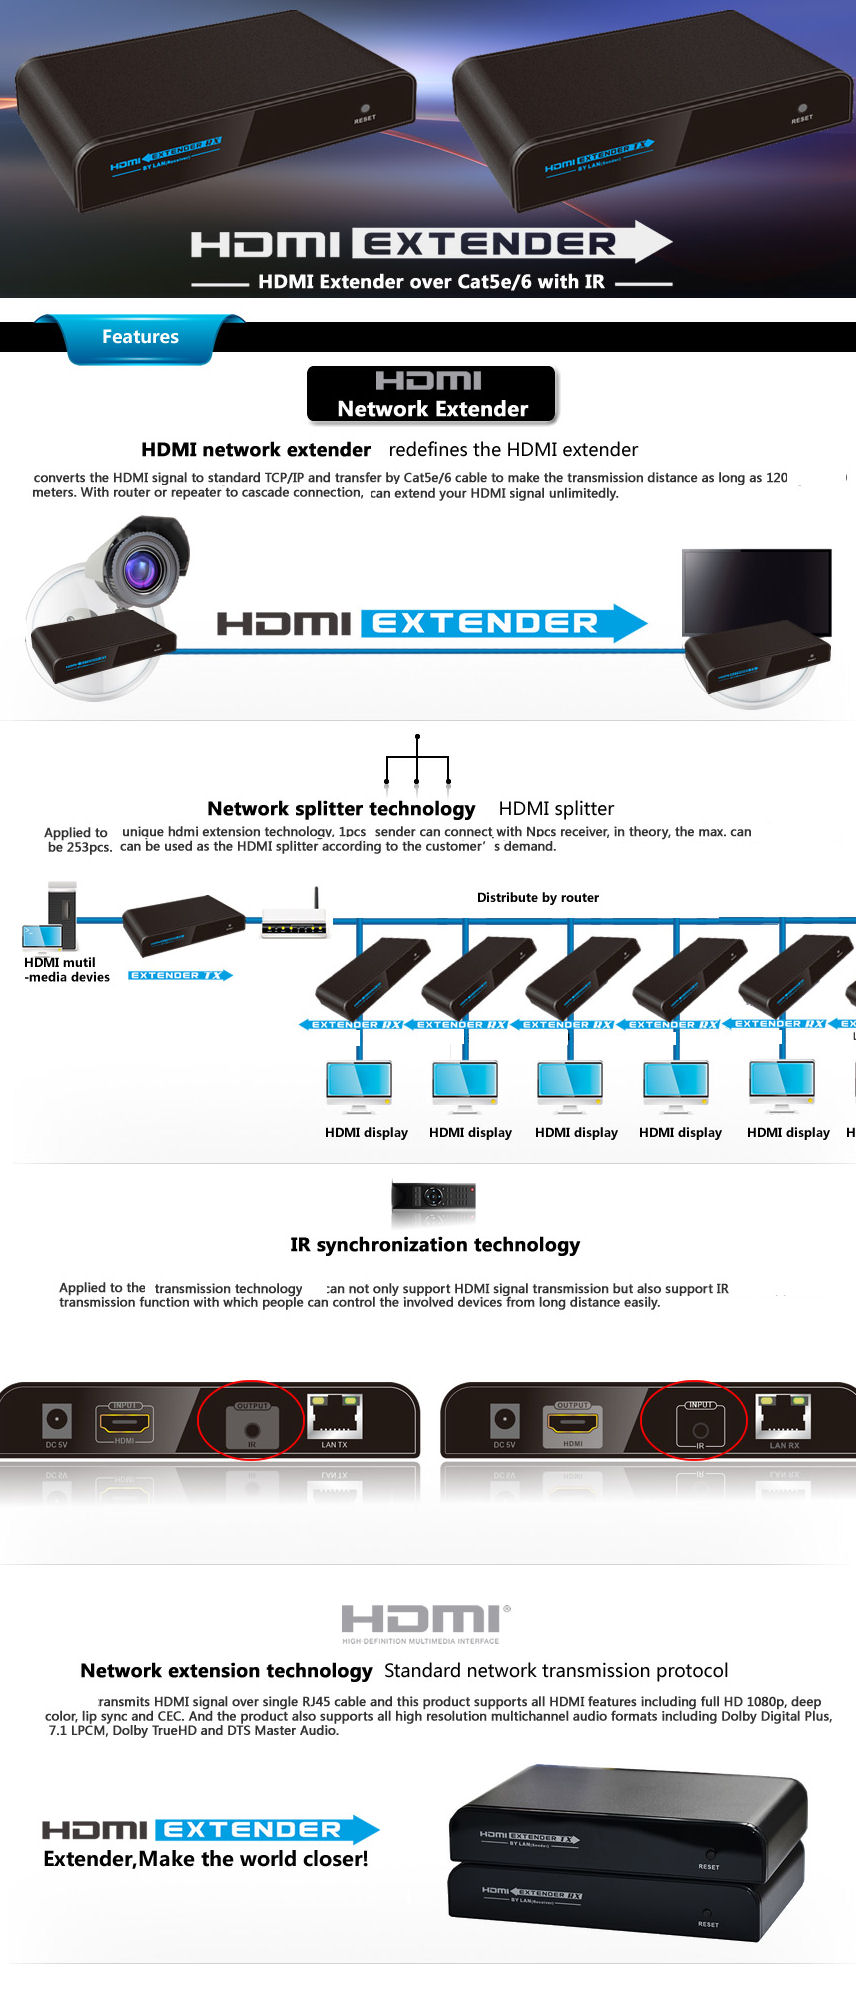 HDMI Extender over Cat5e/6 with IR